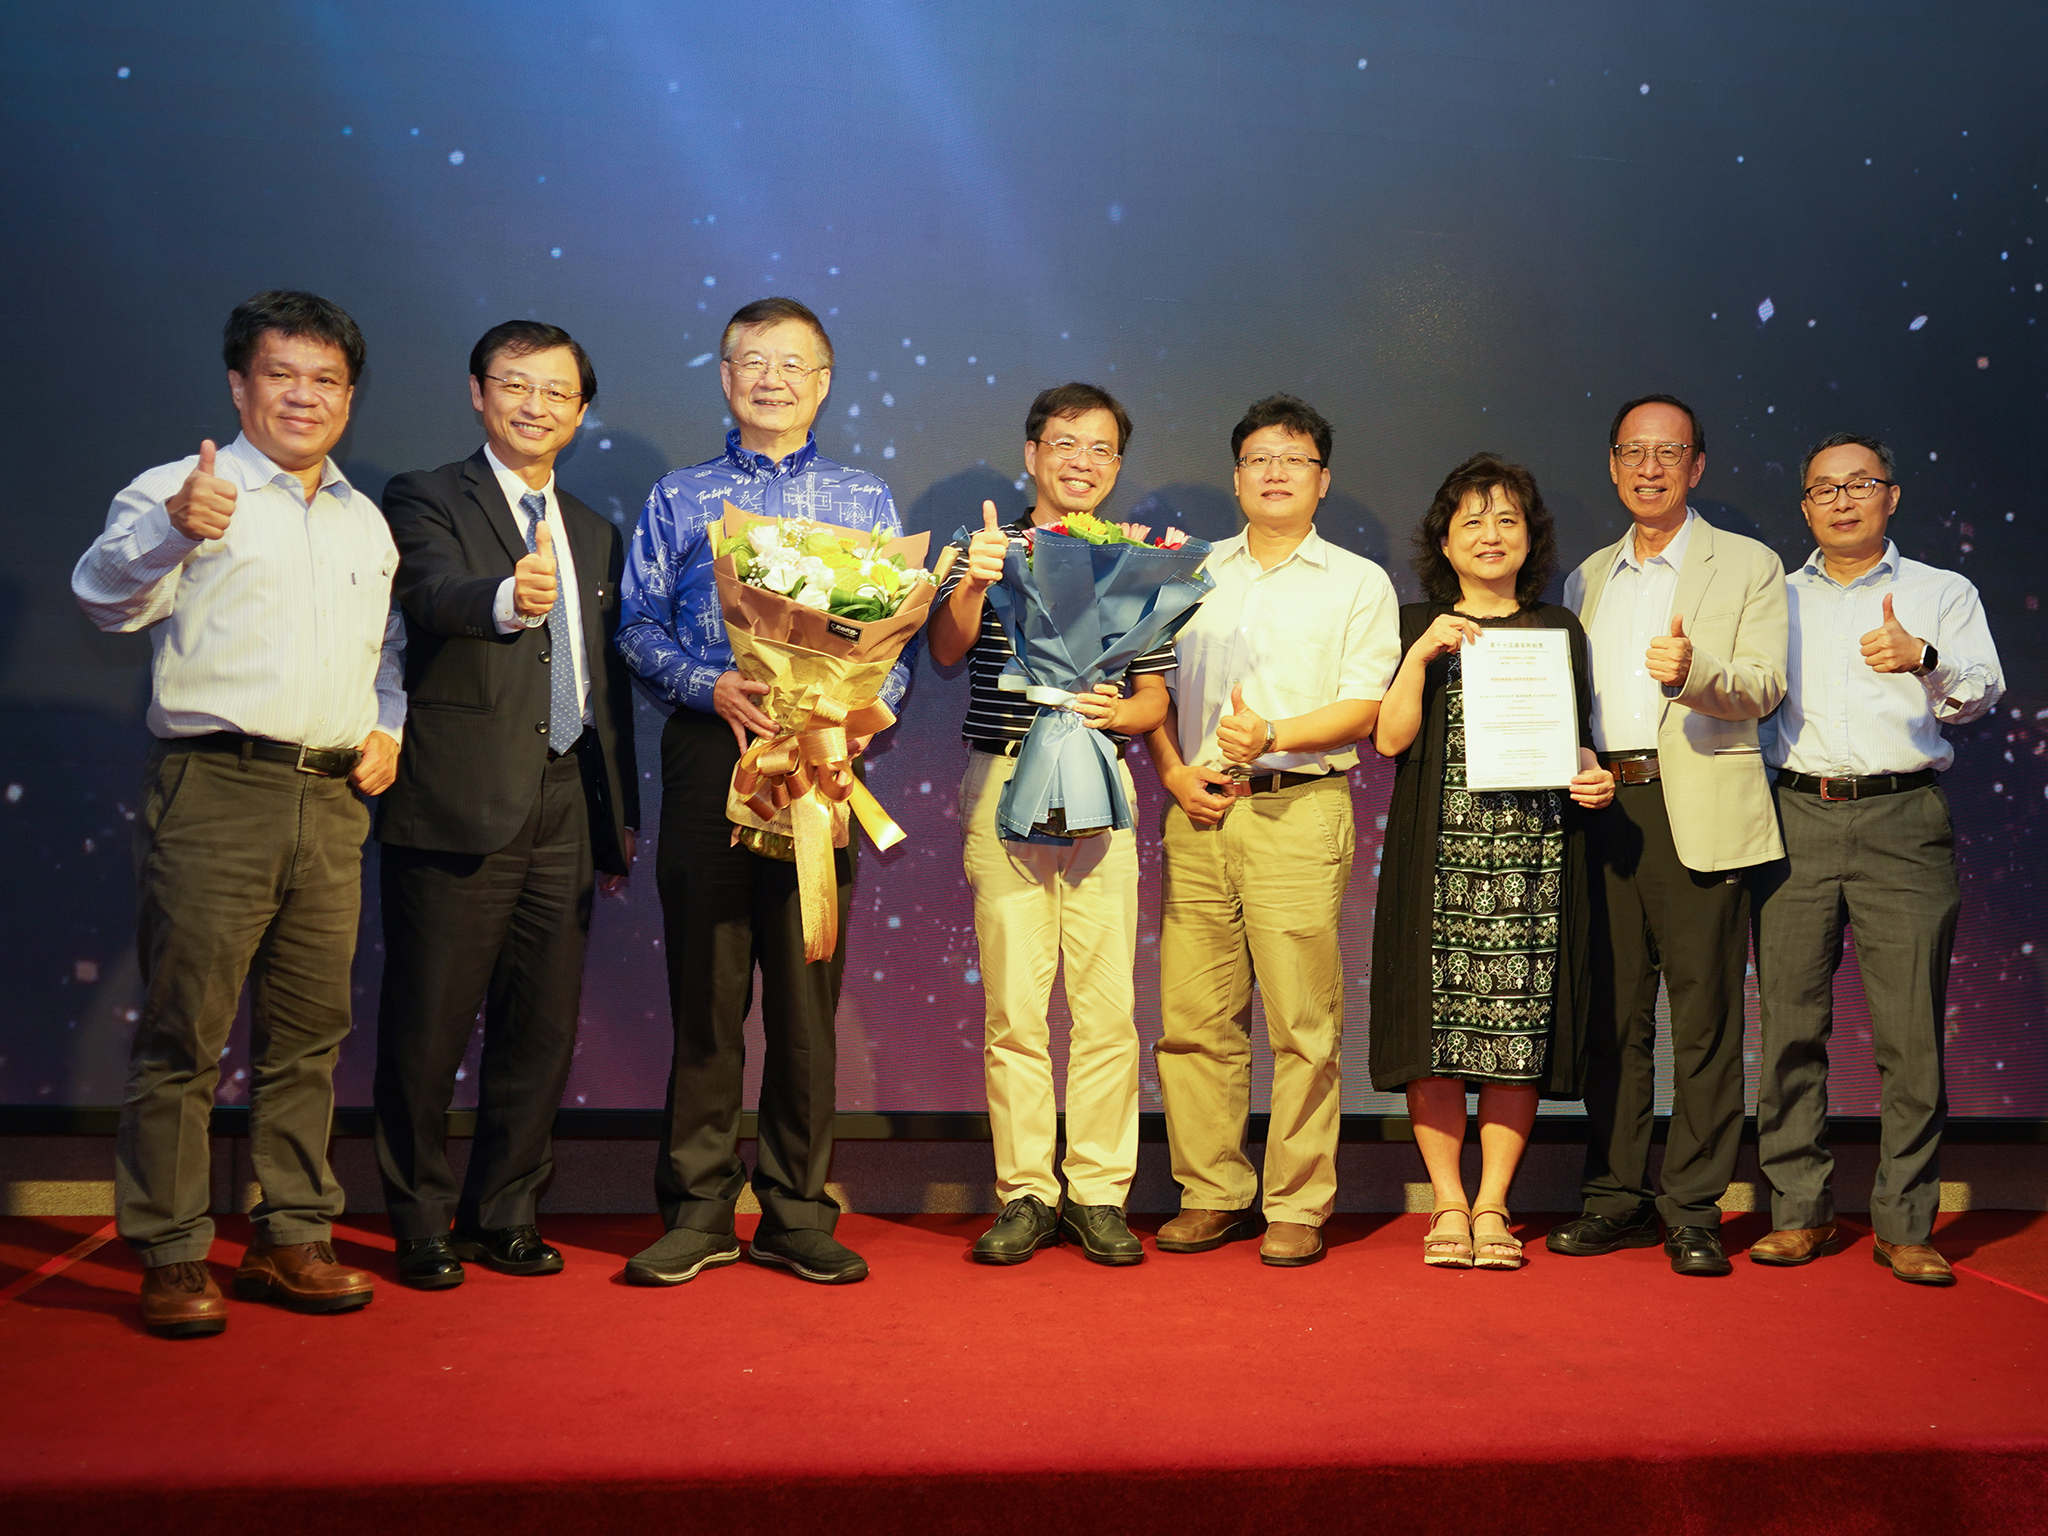 Professor Bor-Shyh Lin of the Institute of Imaging and Biomedical Photonics and the Research Team of the Chi Mei Medical Center Jointly Win National Innovation Awards